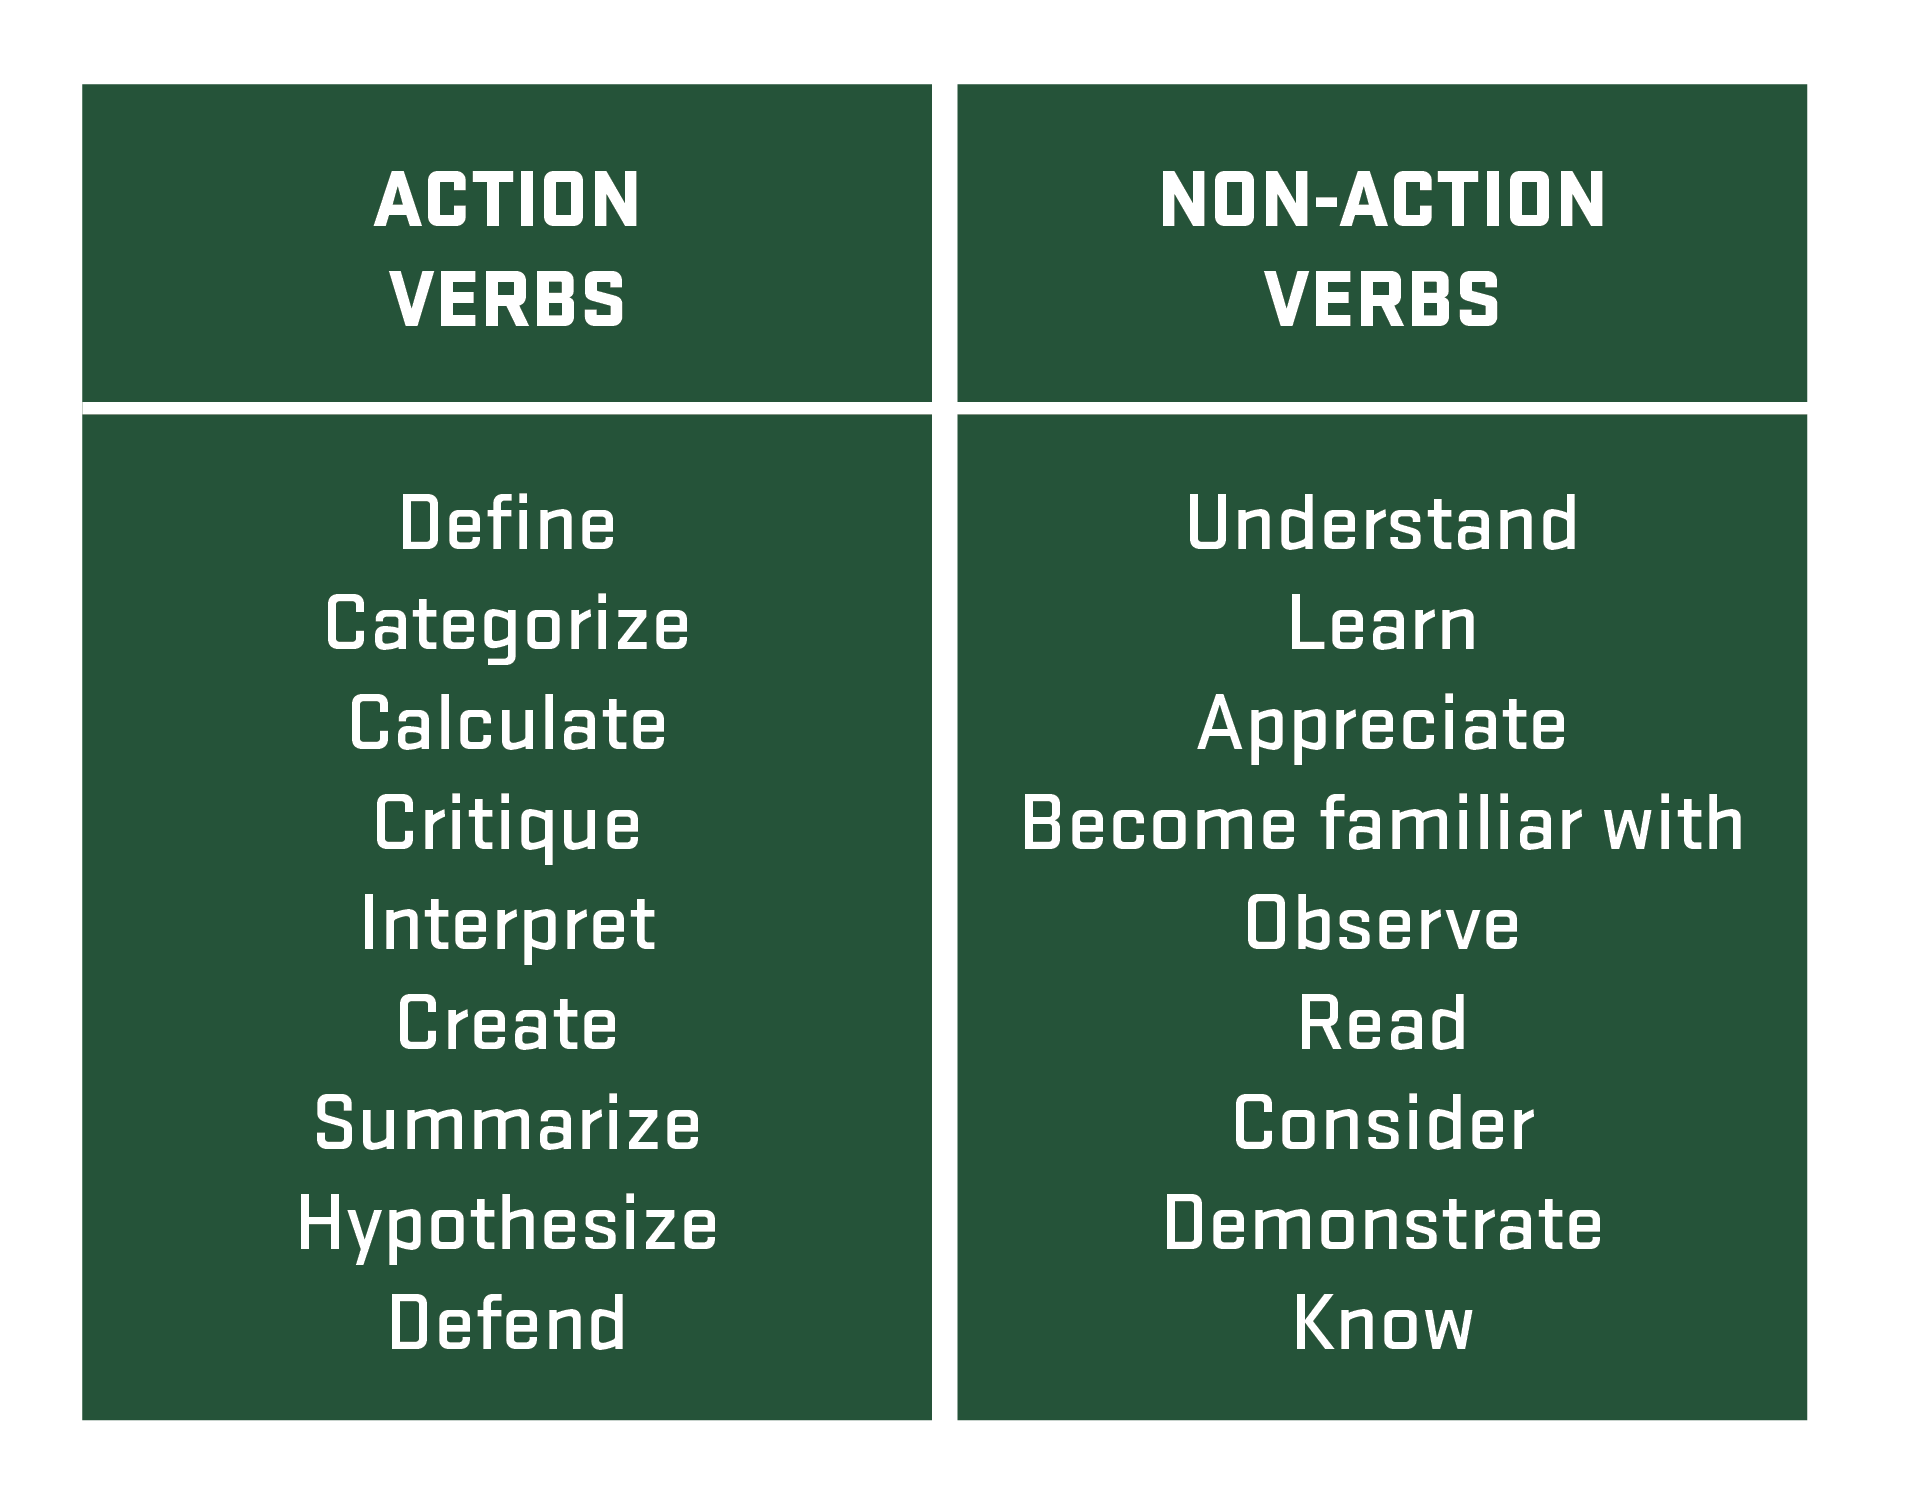 Action Verbs: Define, categorize, calculate, critique, interpret, create, summarize, hypothesize, defend. Non-Action Verbs: Understand, learn, appreciate, become familiar with, observe, read, consider, demonstrate, know.